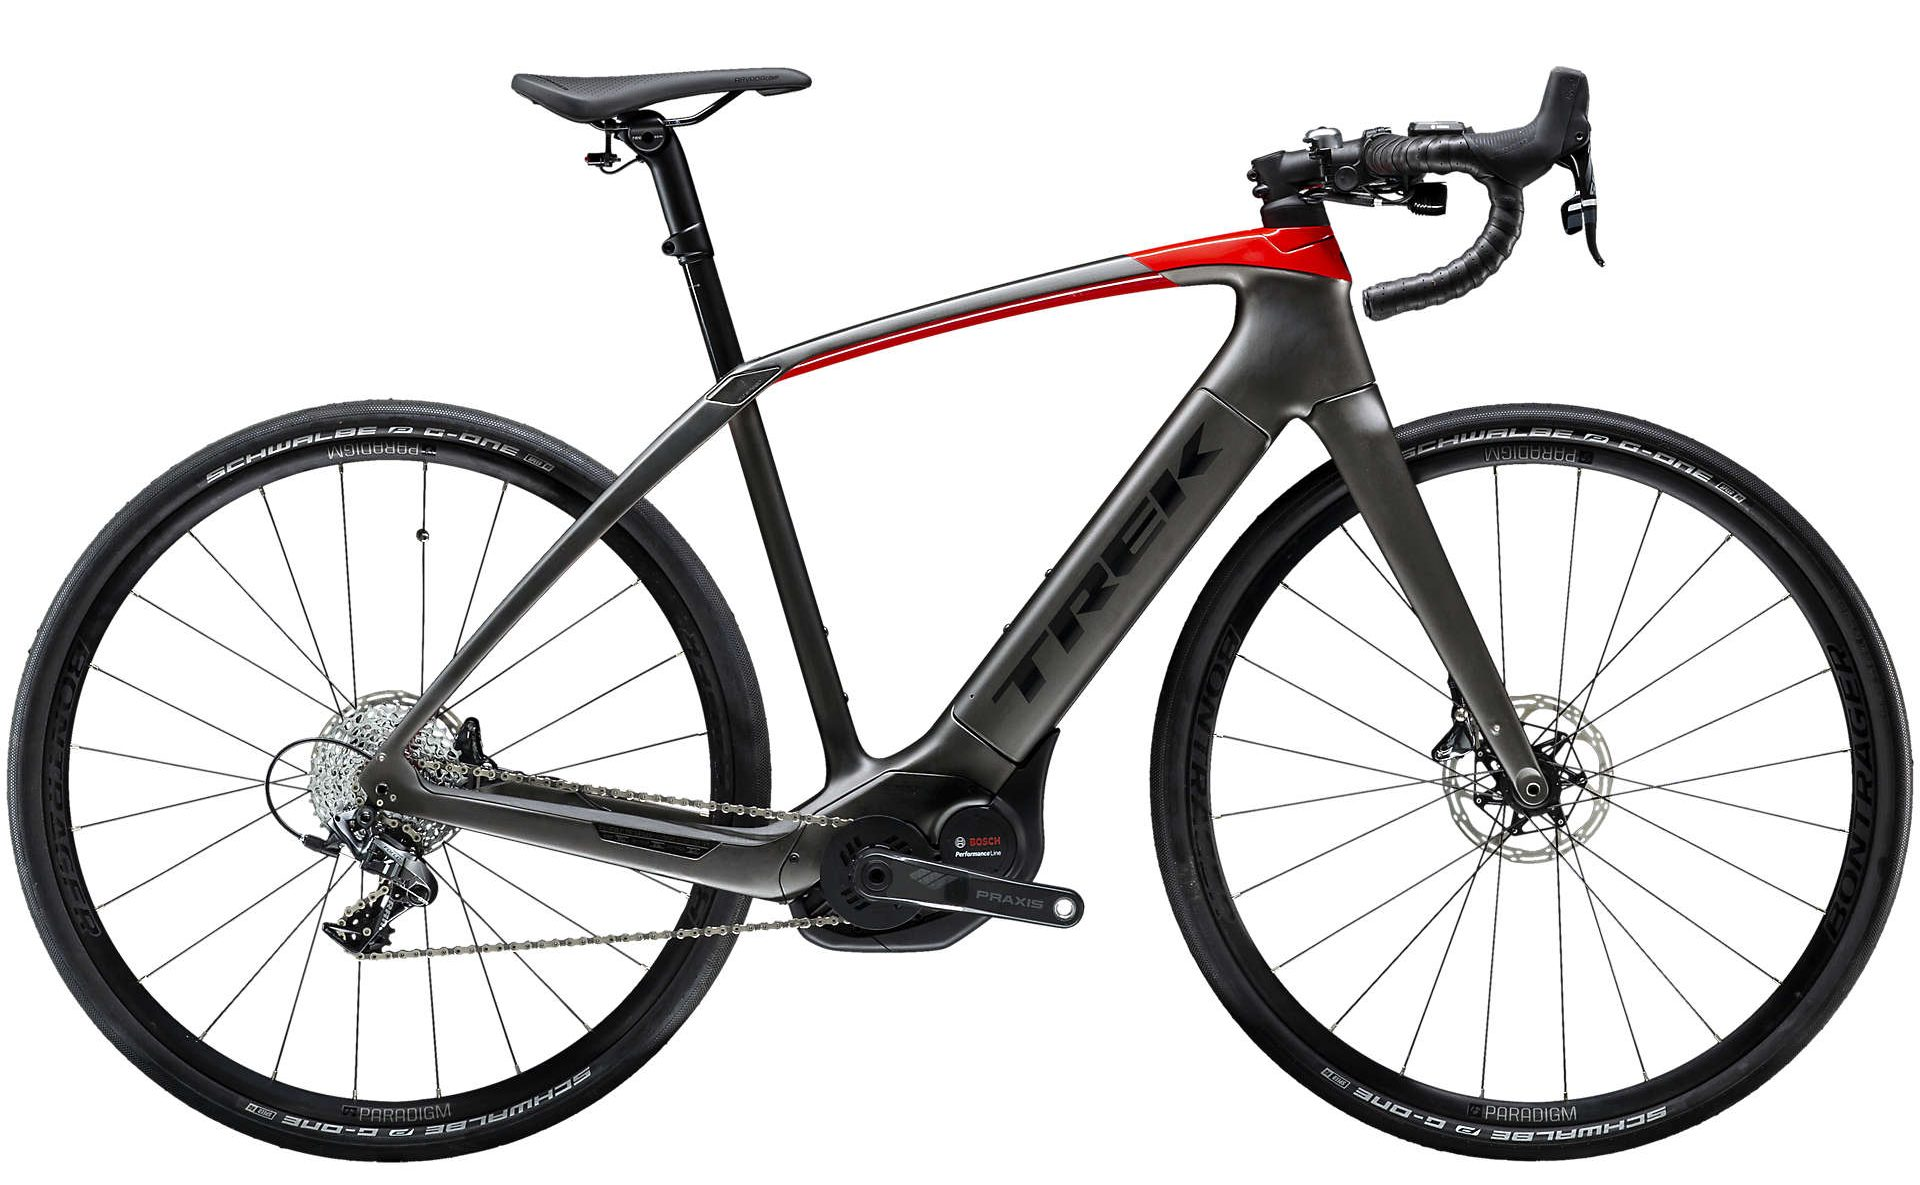 8e5e77e2887 E-road bike motors  which is the best system for you  - Cycling Weekly